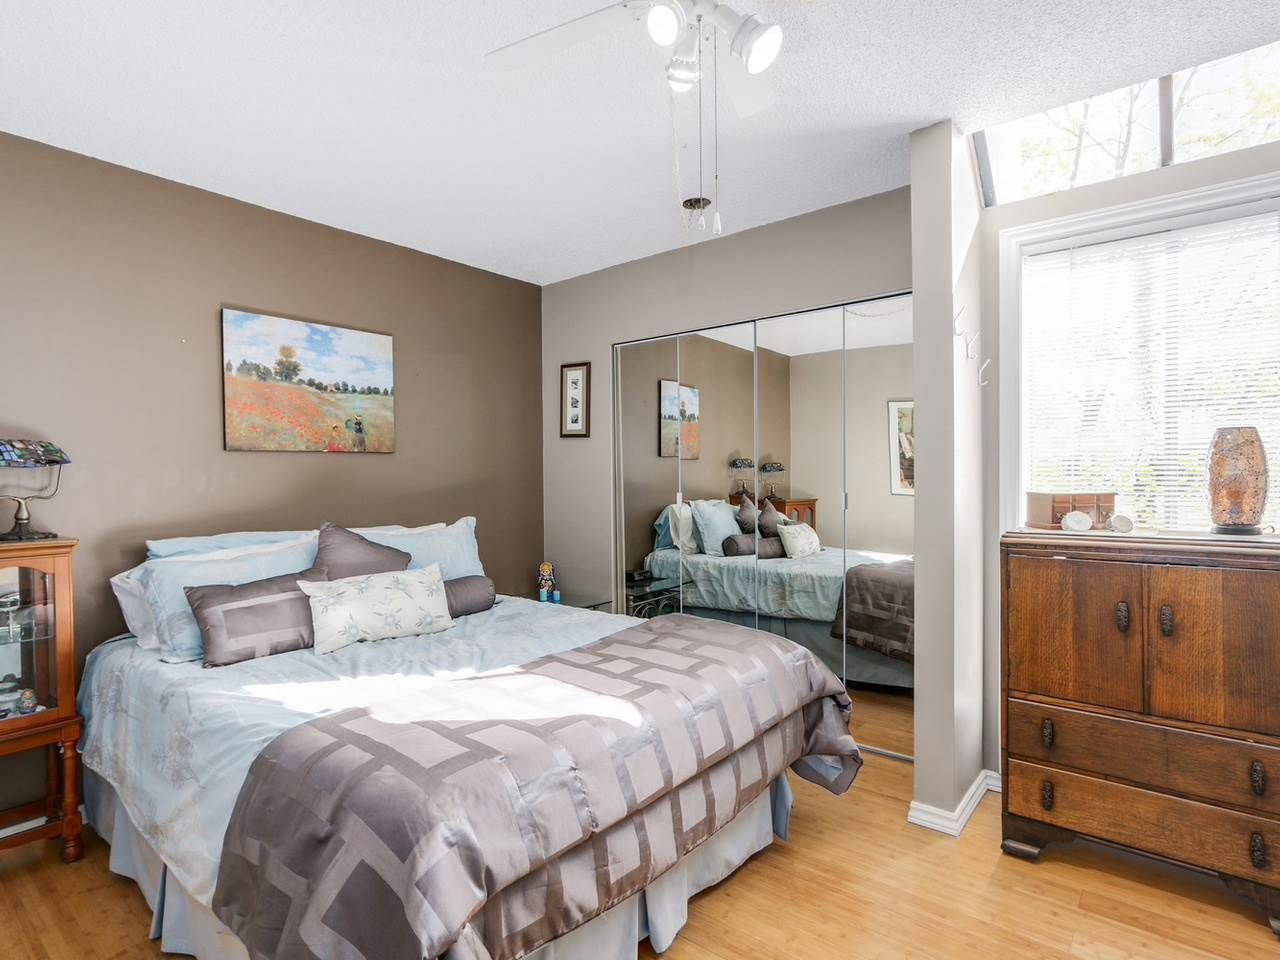 Photo 6: Photos: P3 2885 SPRUCE Street in Vancouver: Fairview VW Condo for sale (Vancouver West)  : MLS®# R2052789